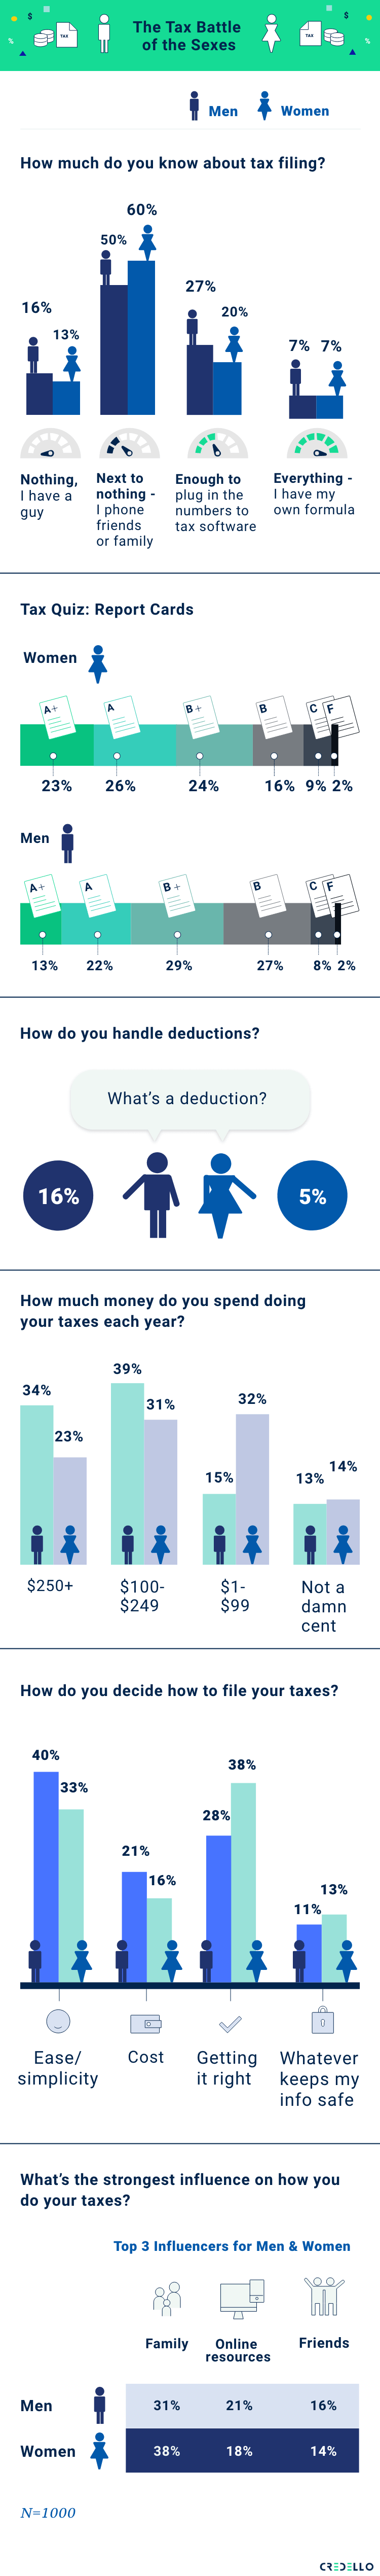 The Tax Battle of the Sexes